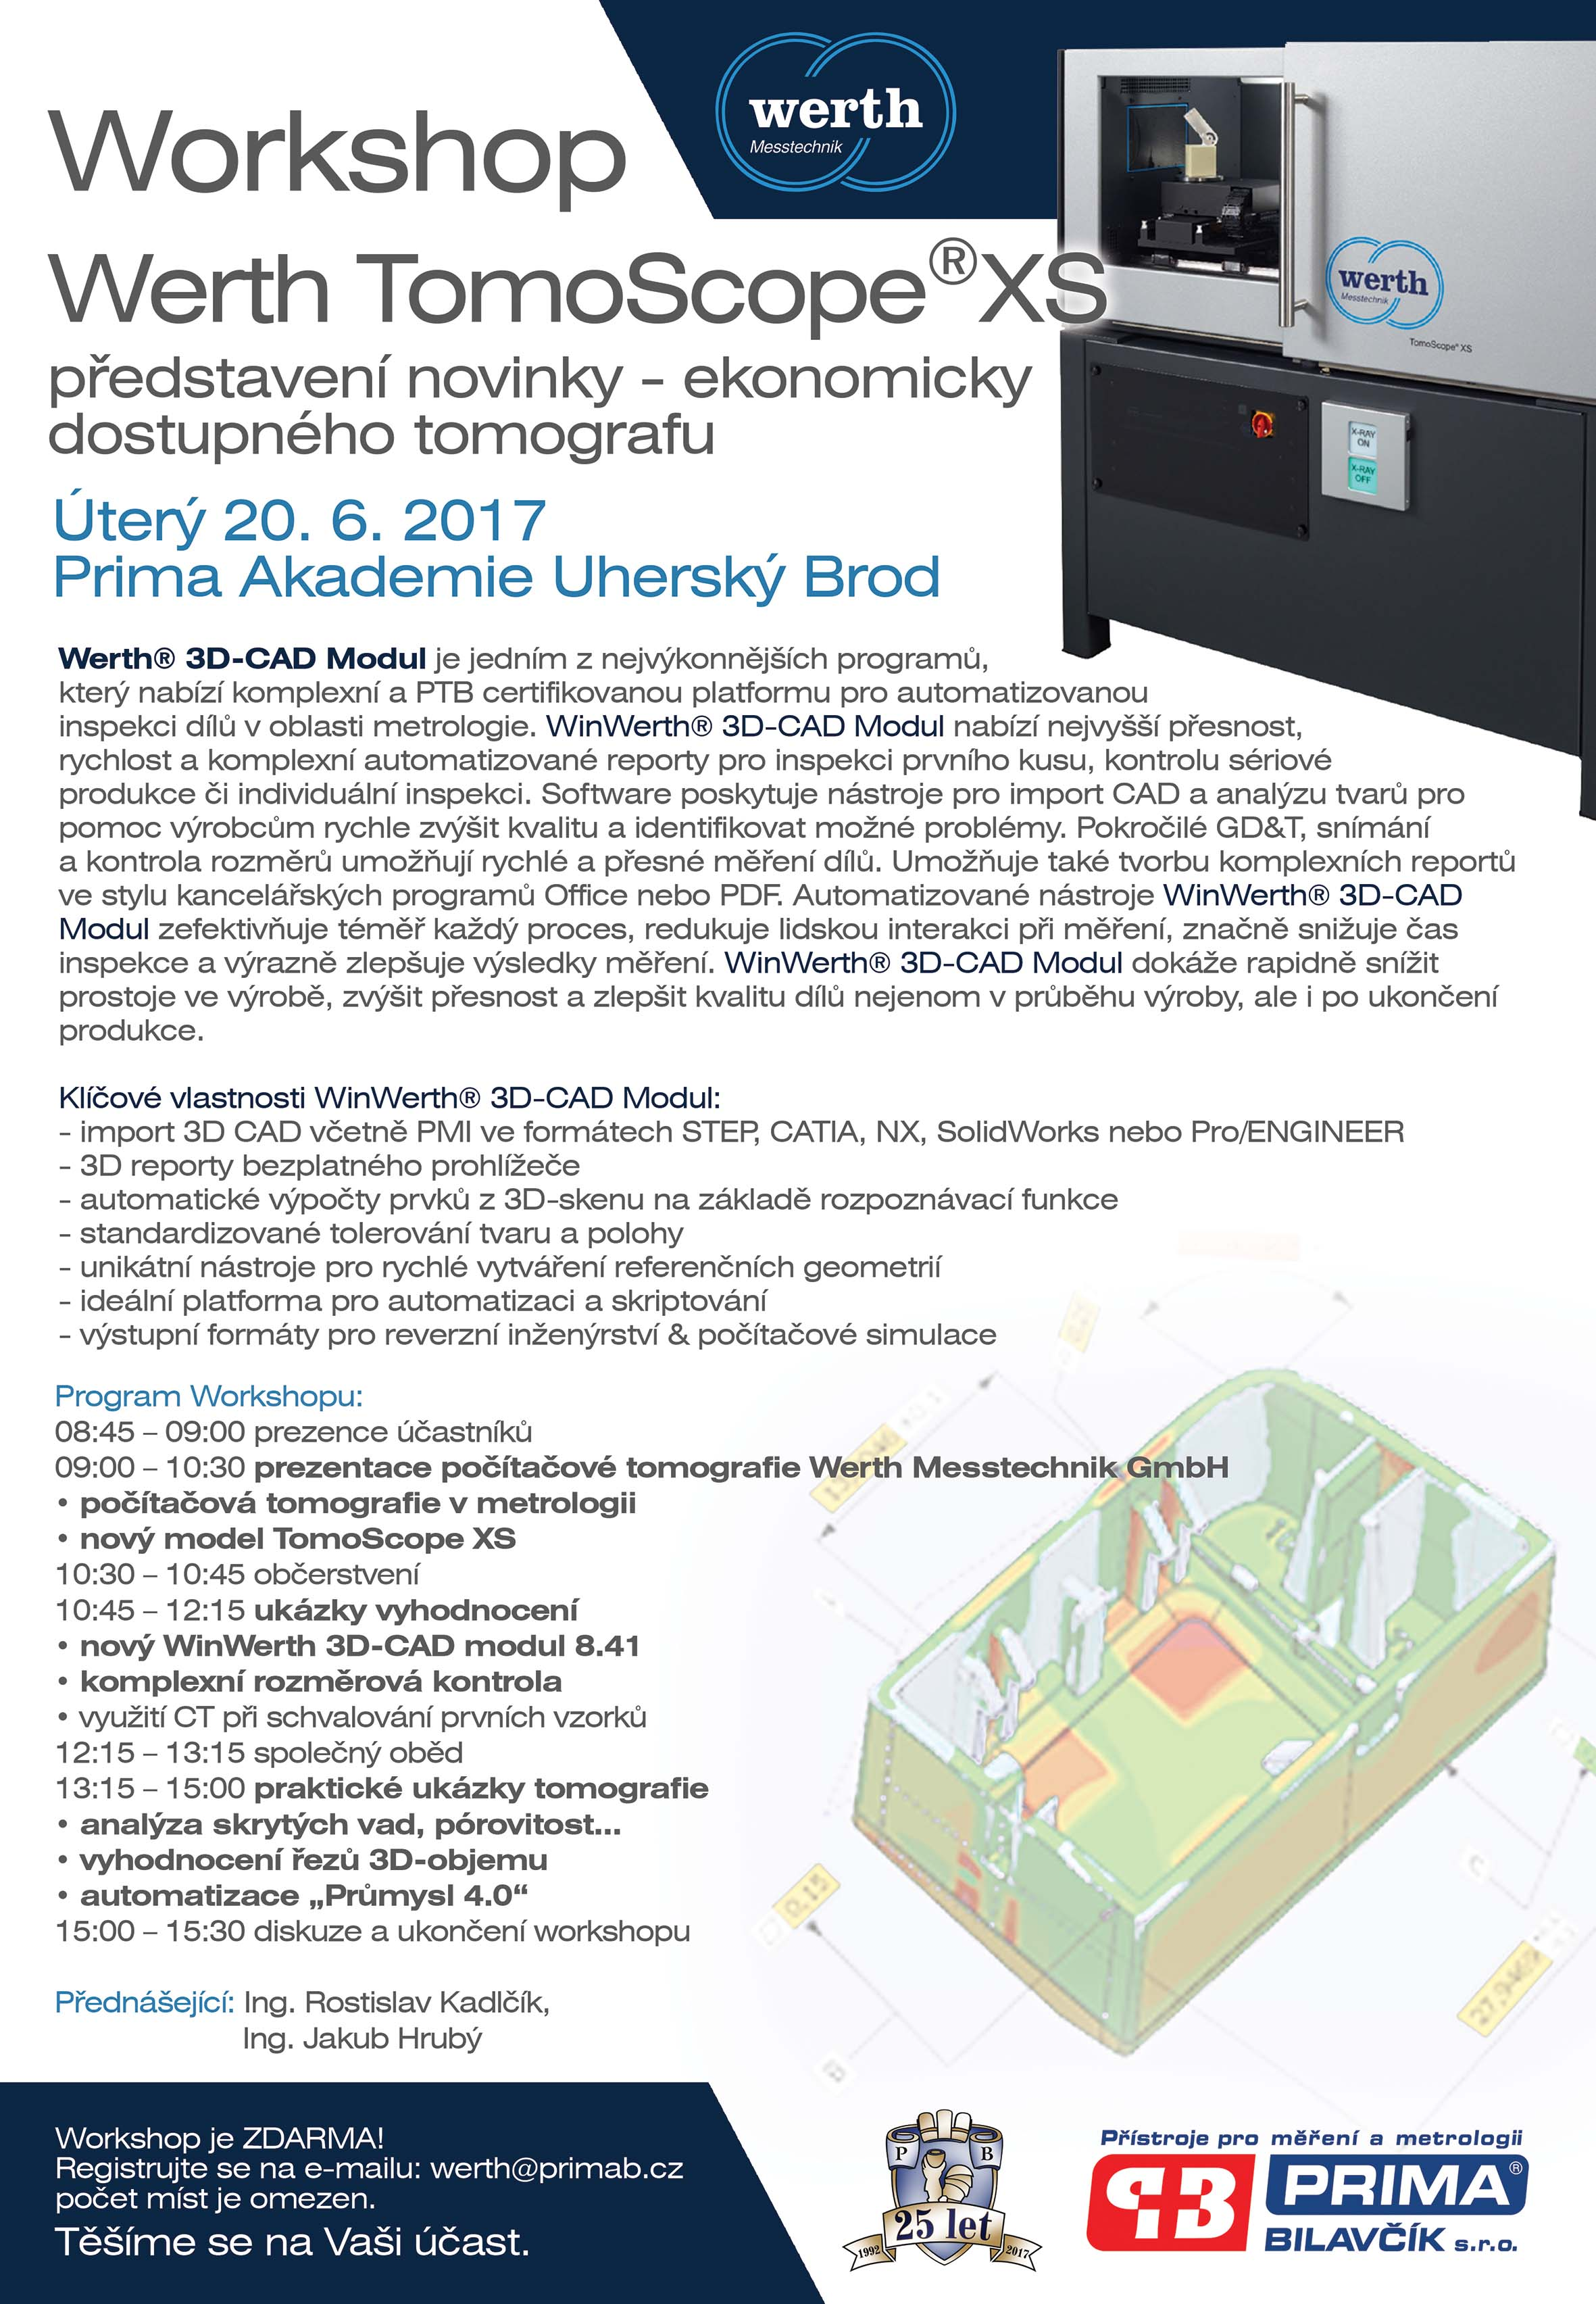 http://www.merici-pristroje.cz/files/ckeditor//NEWSLETTER/2017/workshop_WERTH_tomoscope.jpg